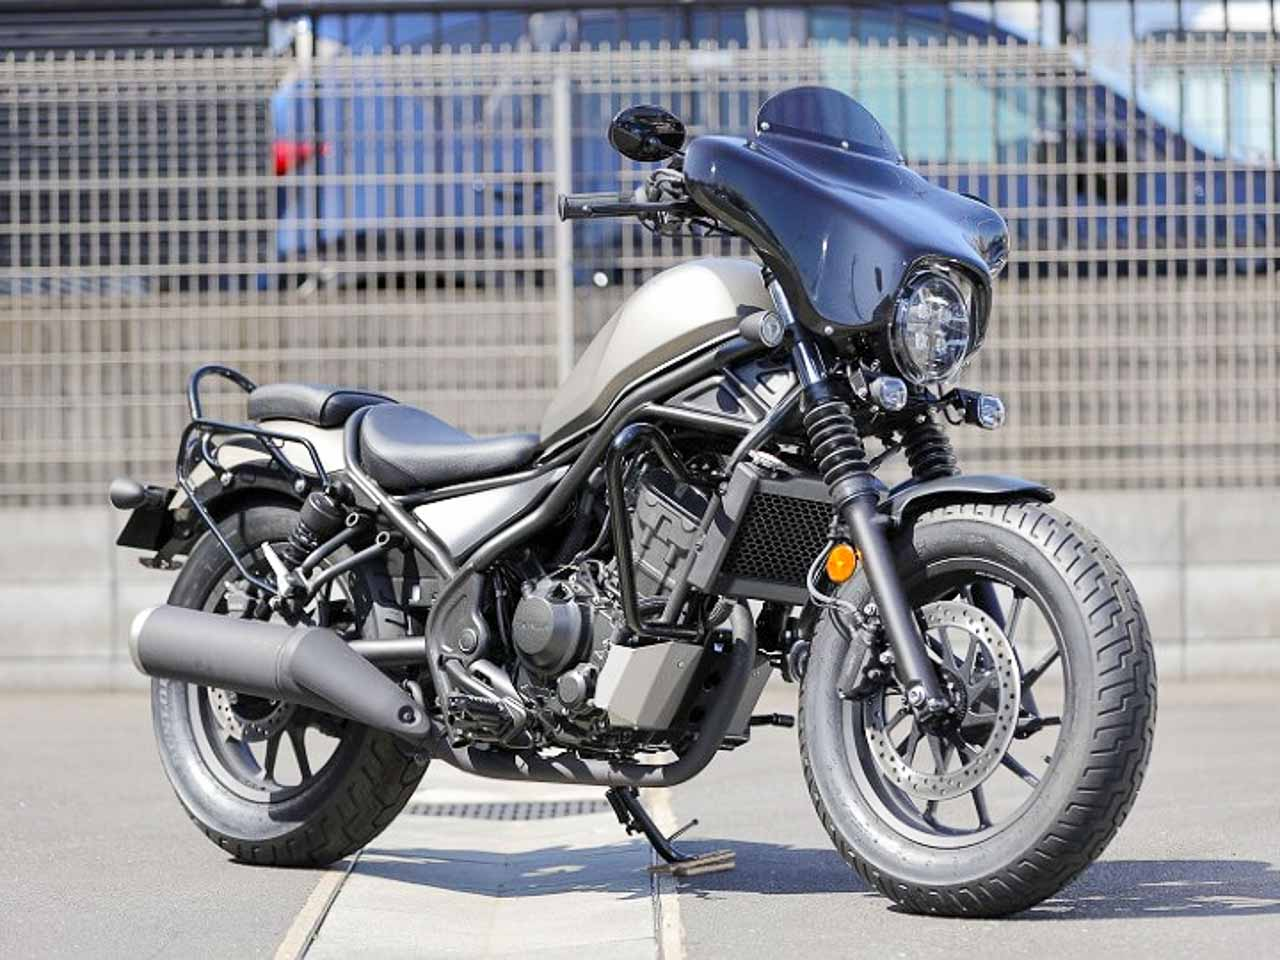 Honda Rebel cruisers get mod kits to look like Harley Davidson